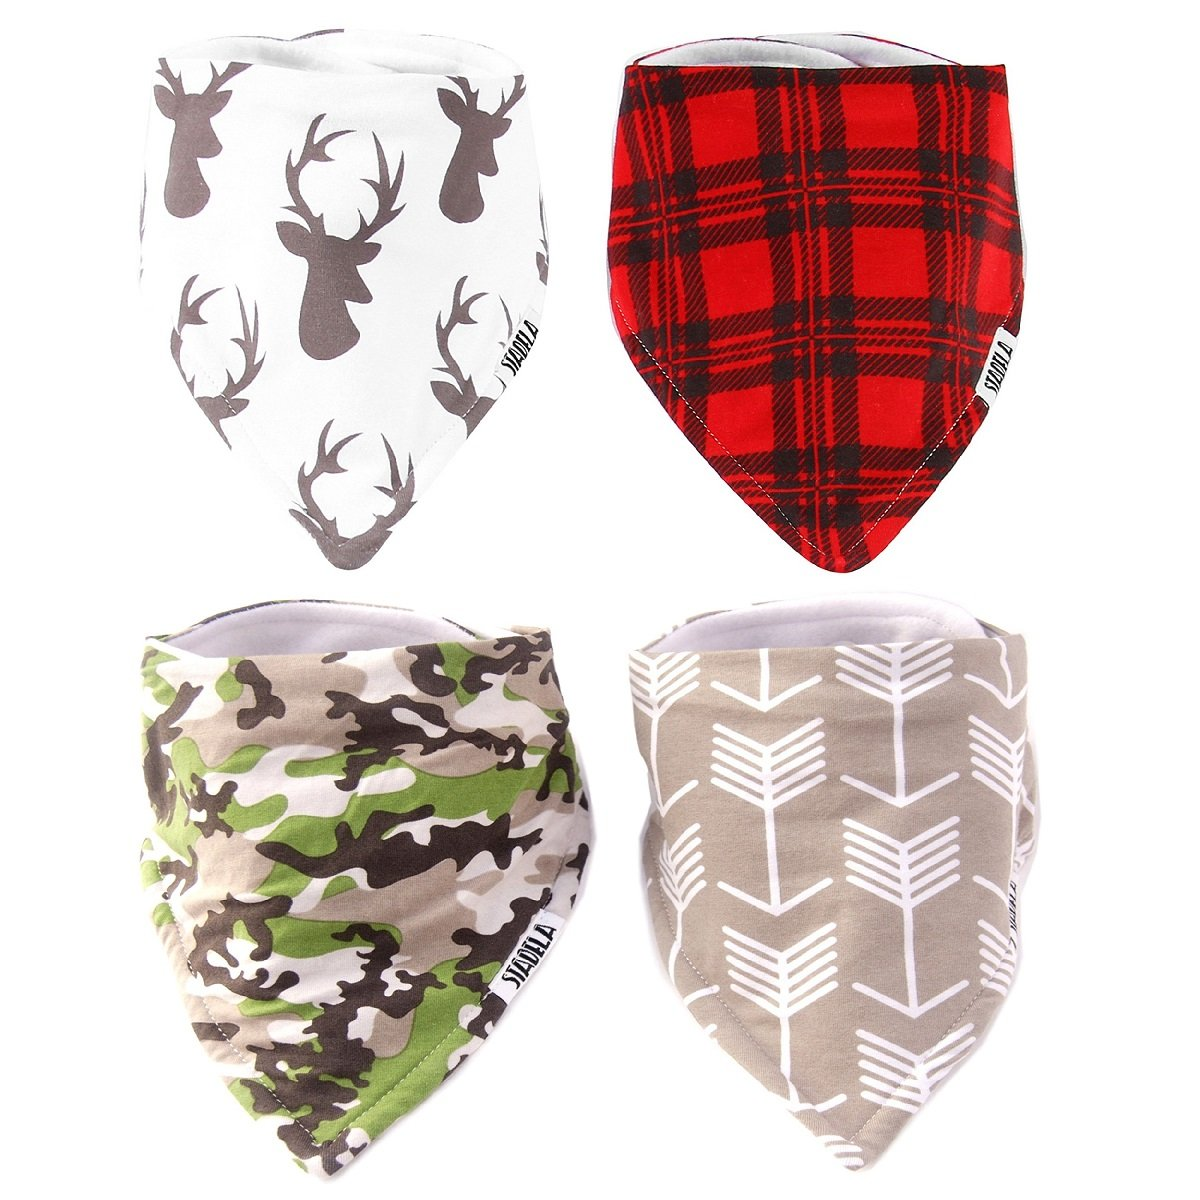 Stadela Baby Adjustable Bandana Drool Bibs for Drooling and Teething Nursery Burp Cloths 4 Pack Baby Shower Gift Set for Boys - Hunting Adventure with Deer Antler Arrows Plaid Woodland Forest Animal